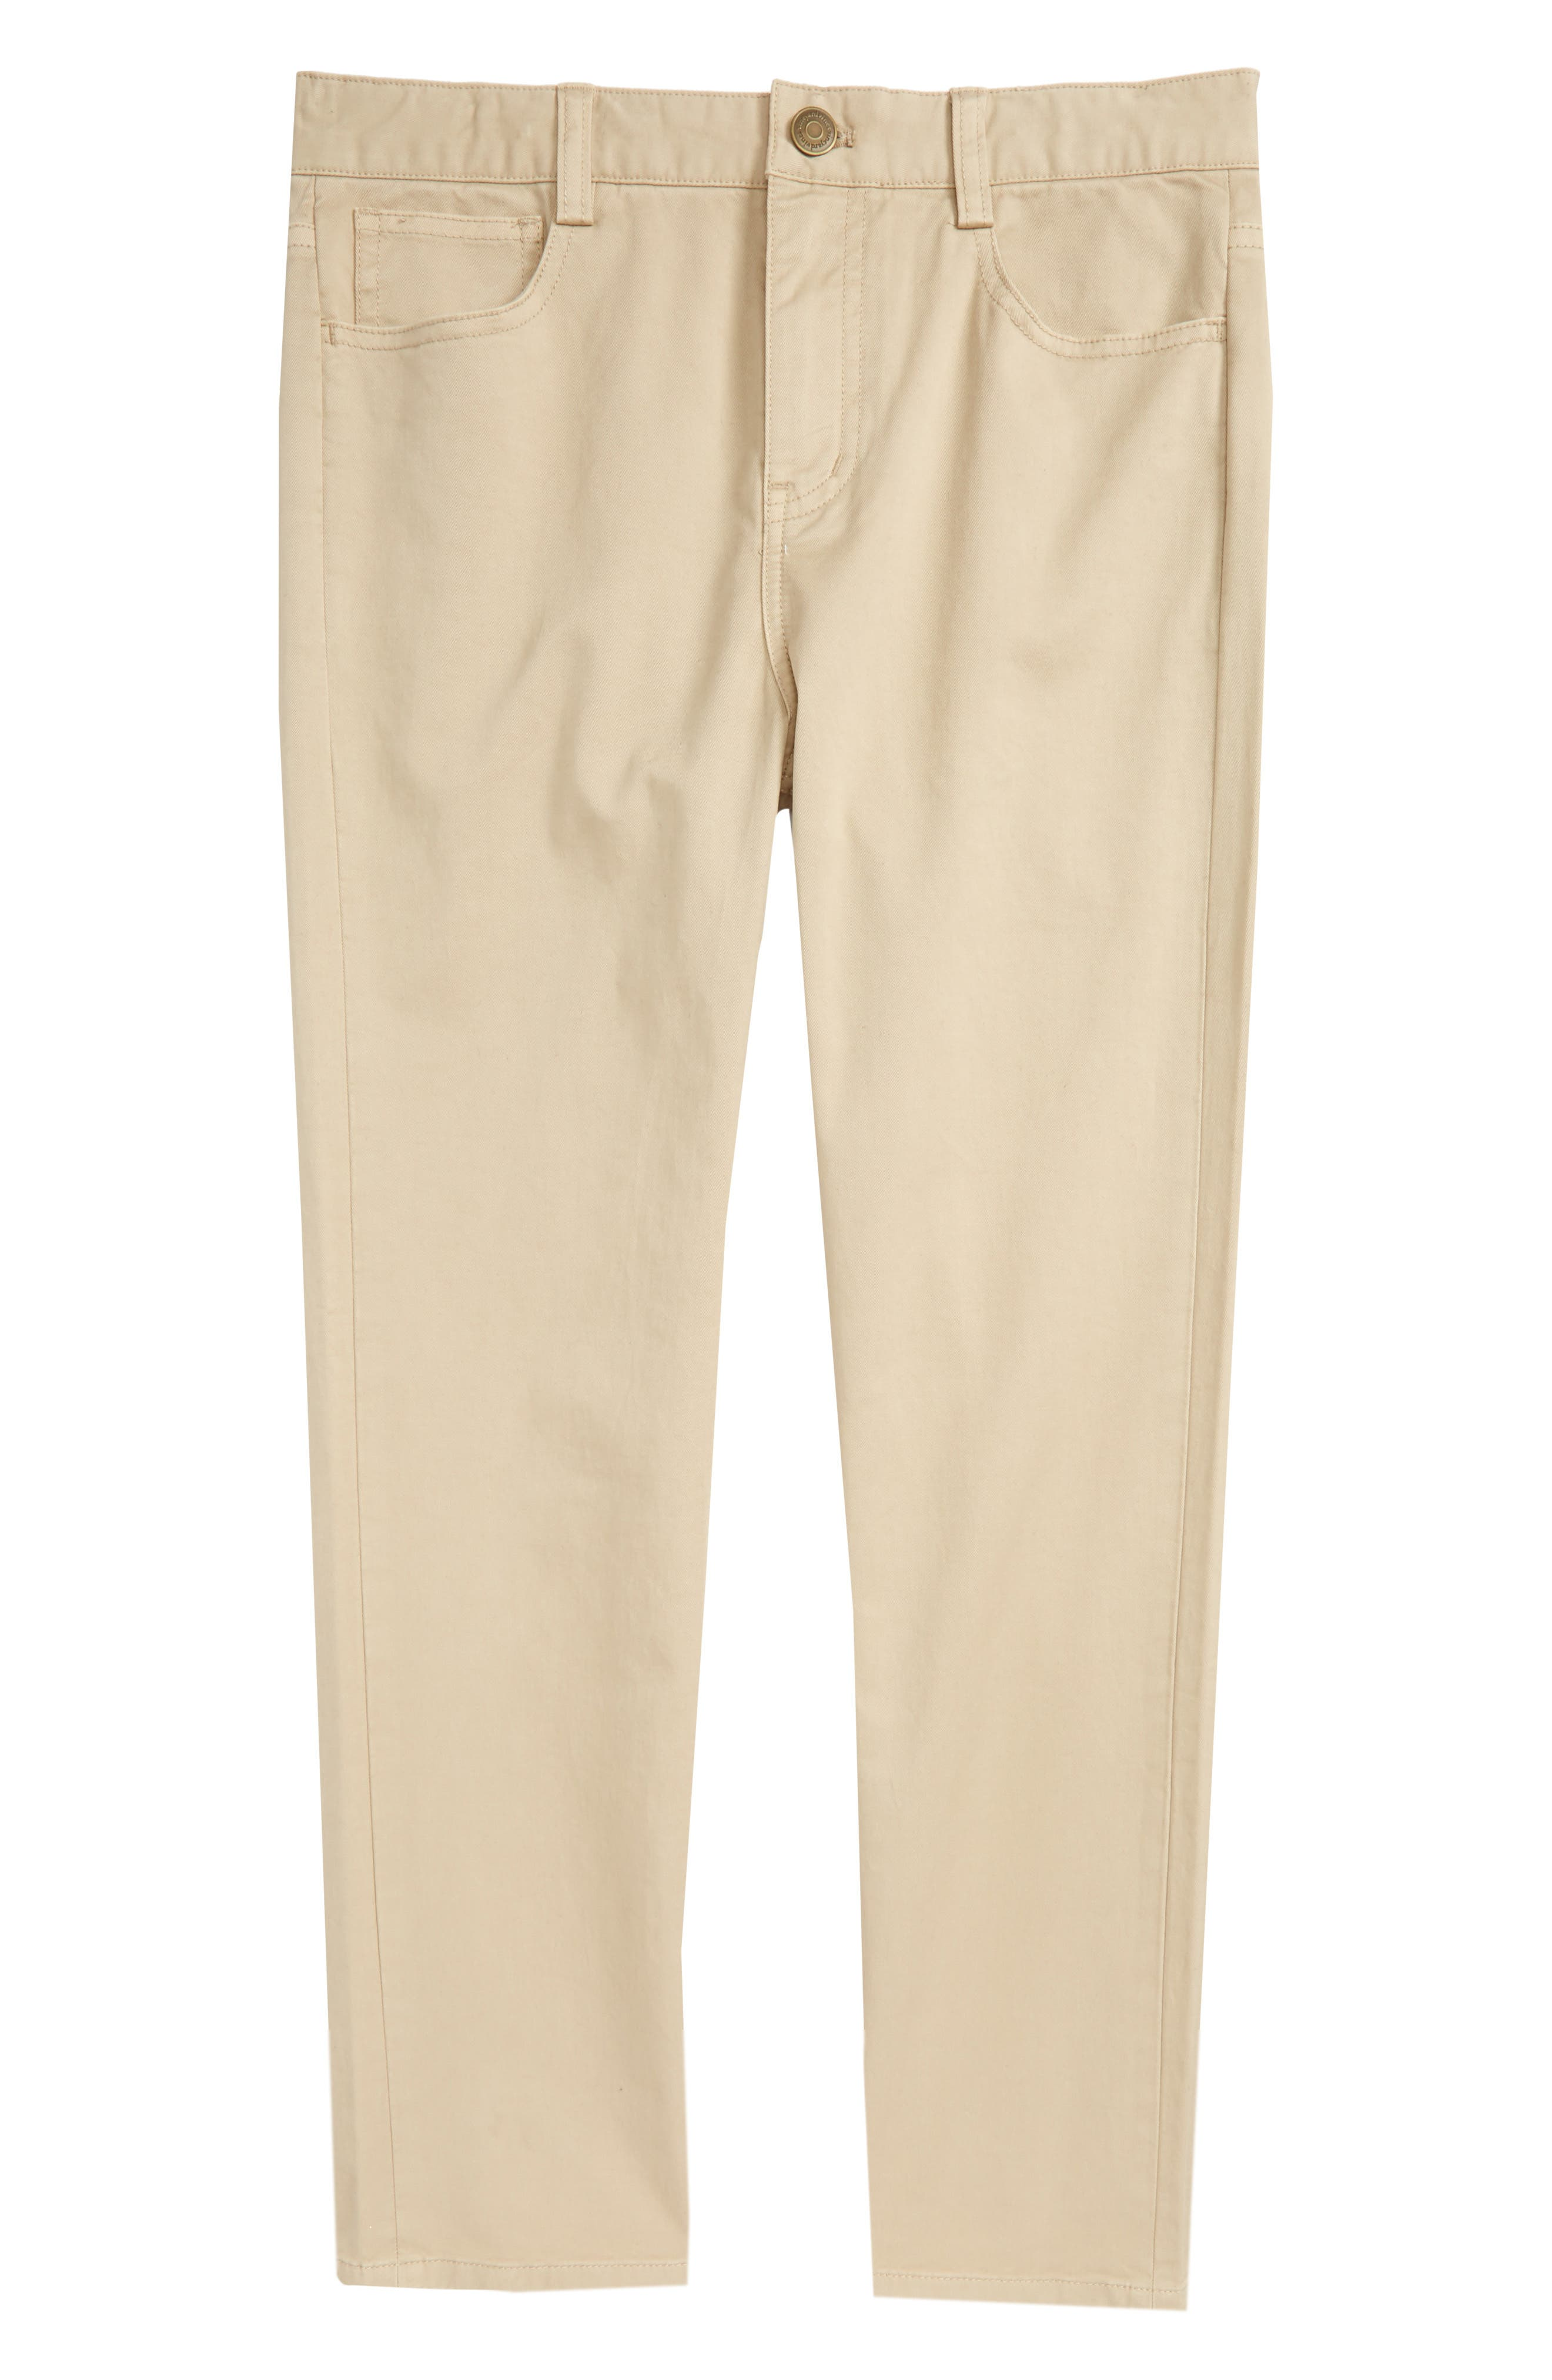 Stretch Twill Pants,                             Main thumbnail 1, color,                             250